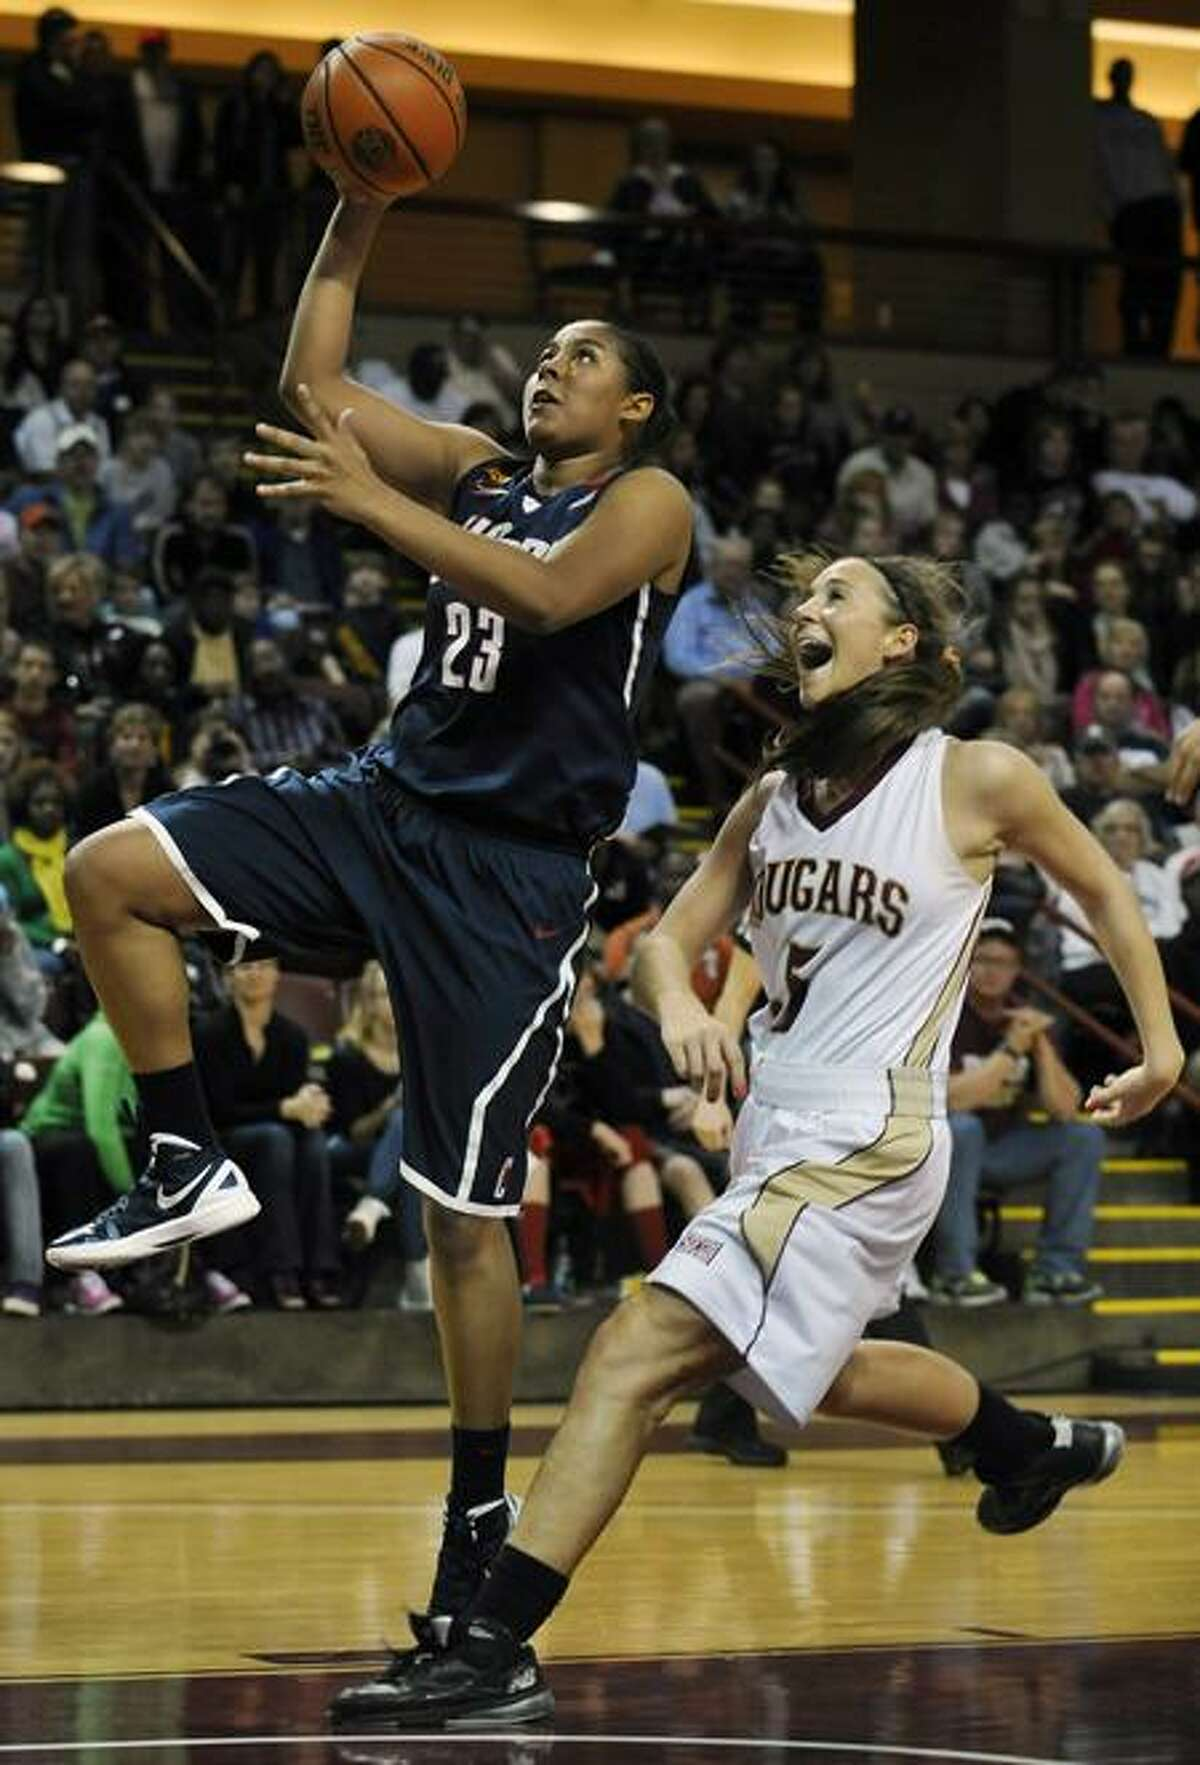 Connecticut's Kaleena Mosqueda-Lewis (23) goes for a layup against College of Charleston's Cathryn Hardy (5) during the first half of an NCAA college basketball game on Wednesday, Dec. 21, 2011, in Charleston, S.C. (AP Photo/Rainier Ehrhardt)